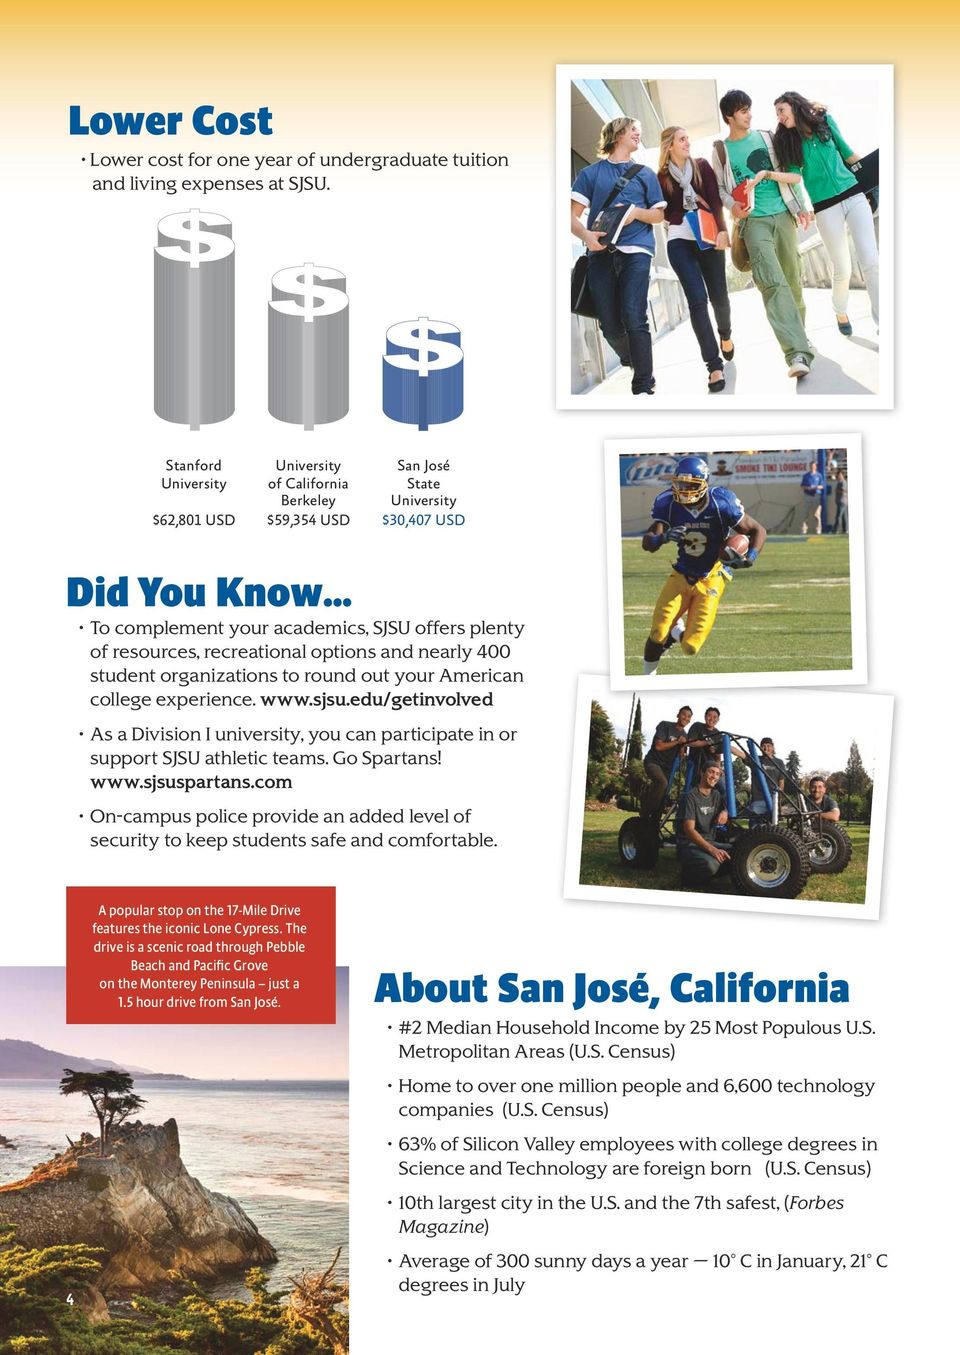 recreational options and nearly 400 student organizations to round out your American college experience. www.sjsu.